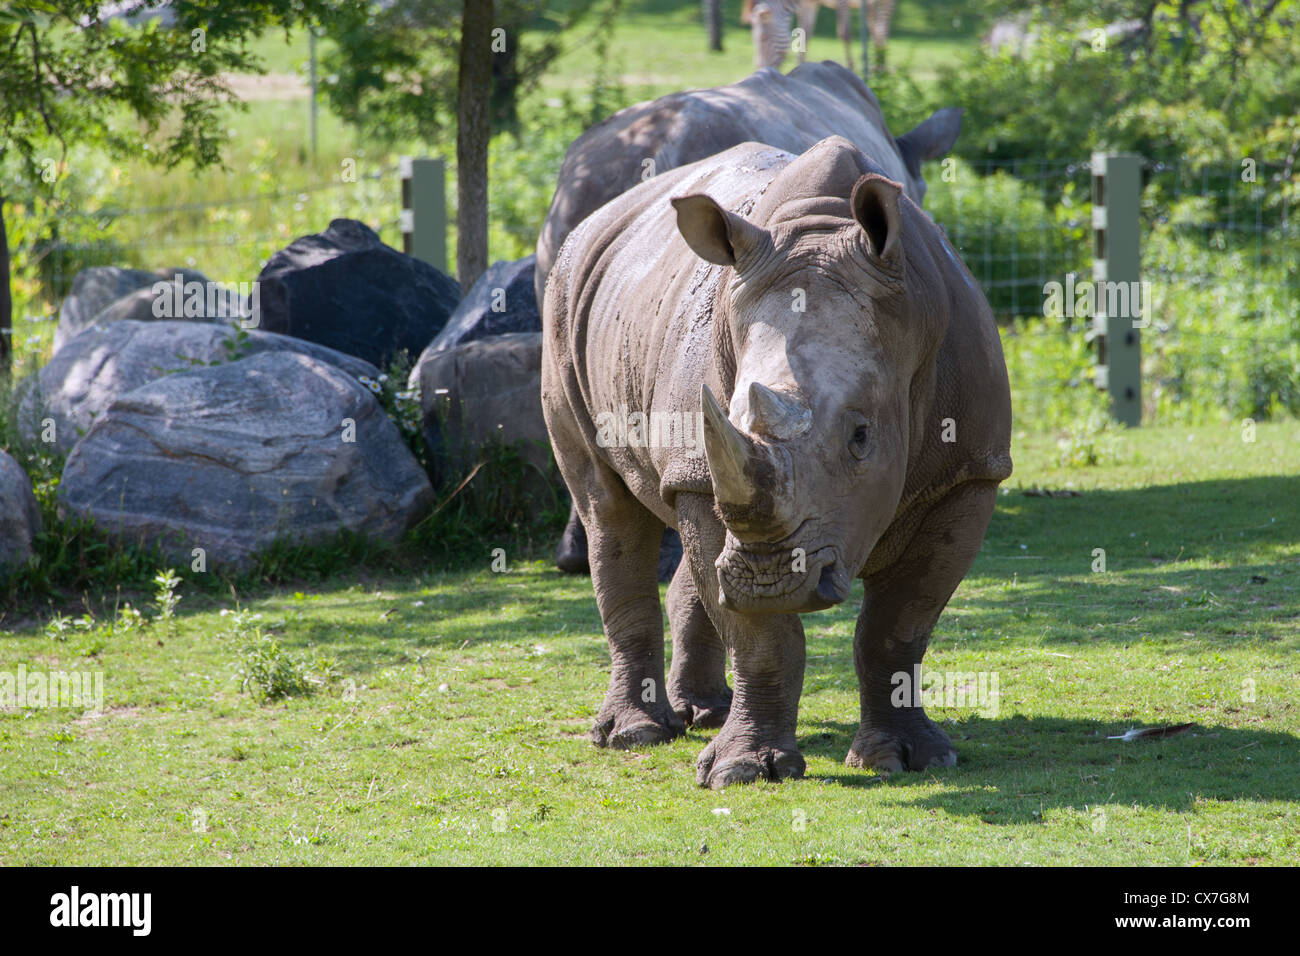 This is an image of a Rhino at the Toronto Zoo - Stock Image